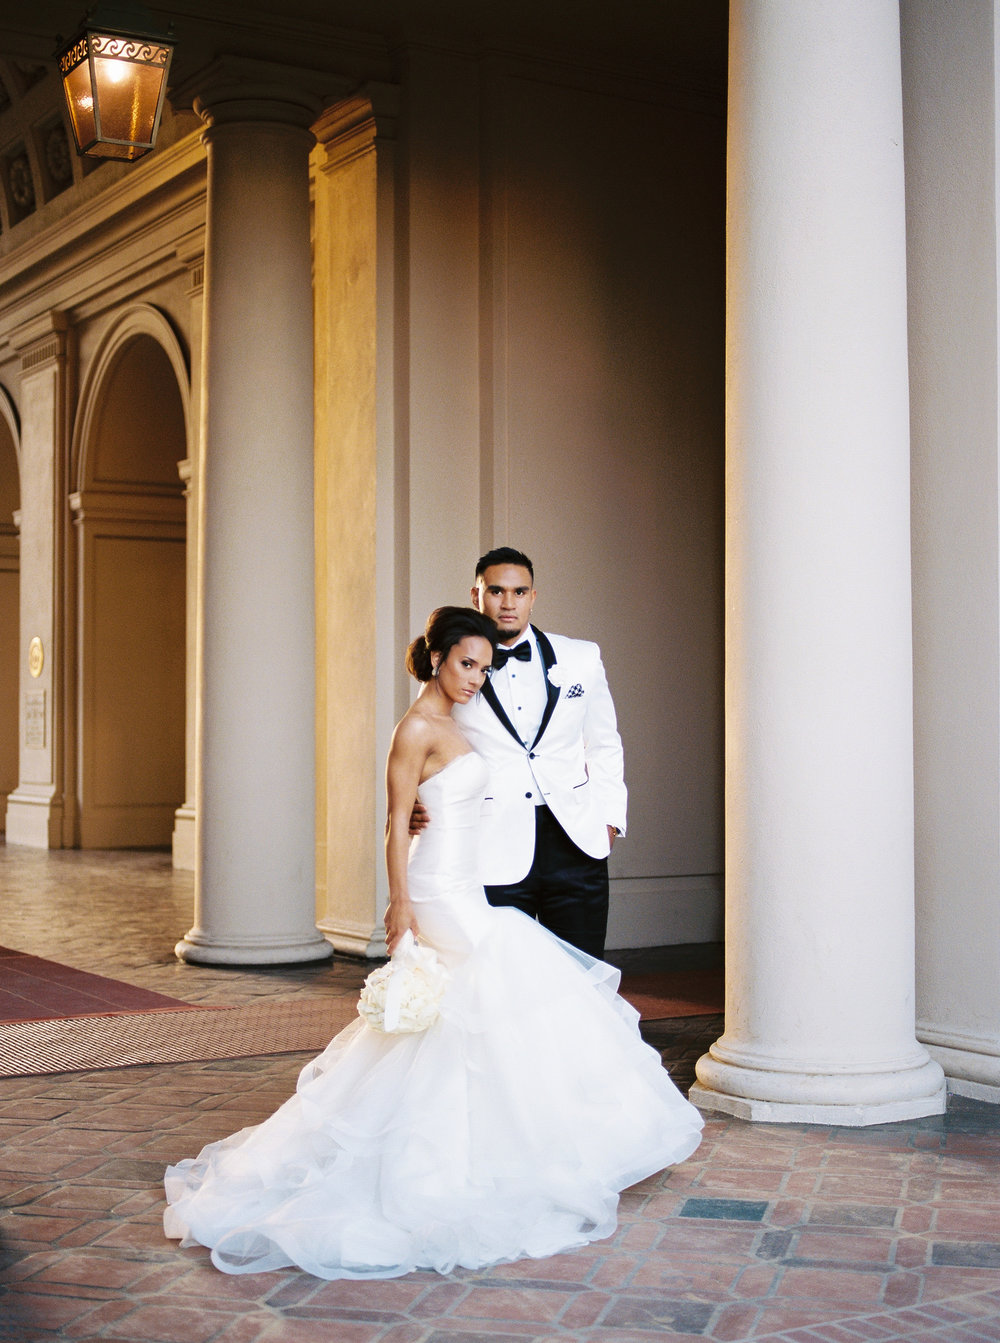 dennisroycoronel_pasadena_wedding_photographer-30.jpg